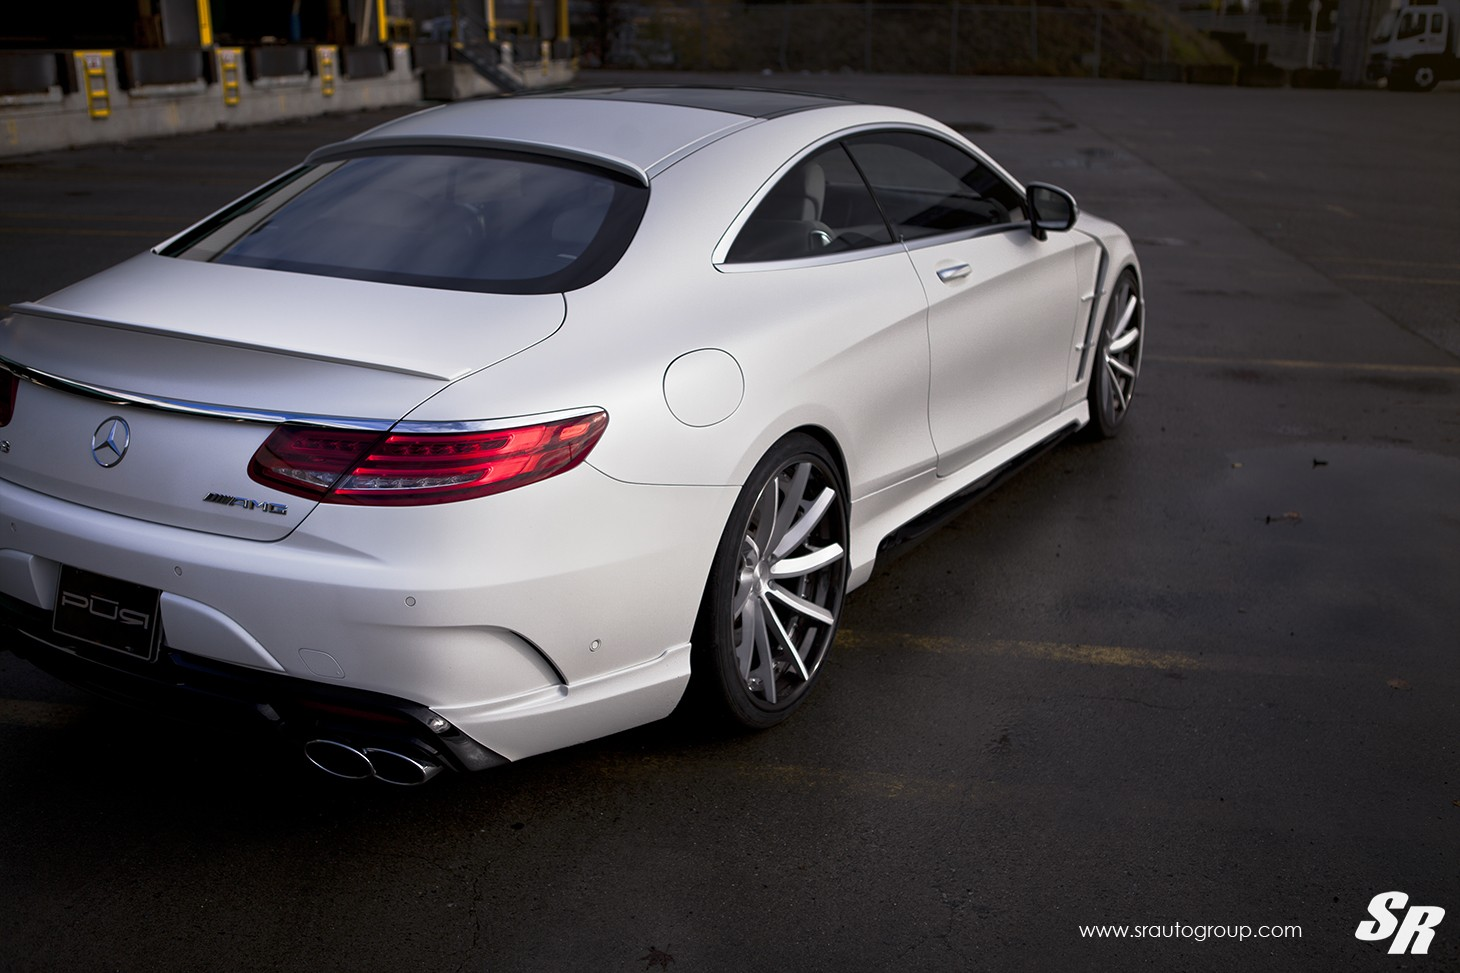 mercedes amg s63 coupe gets wald body kit and pur wheels in canada autoevolution. Black Bedroom Furniture Sets. Home Design Ideas